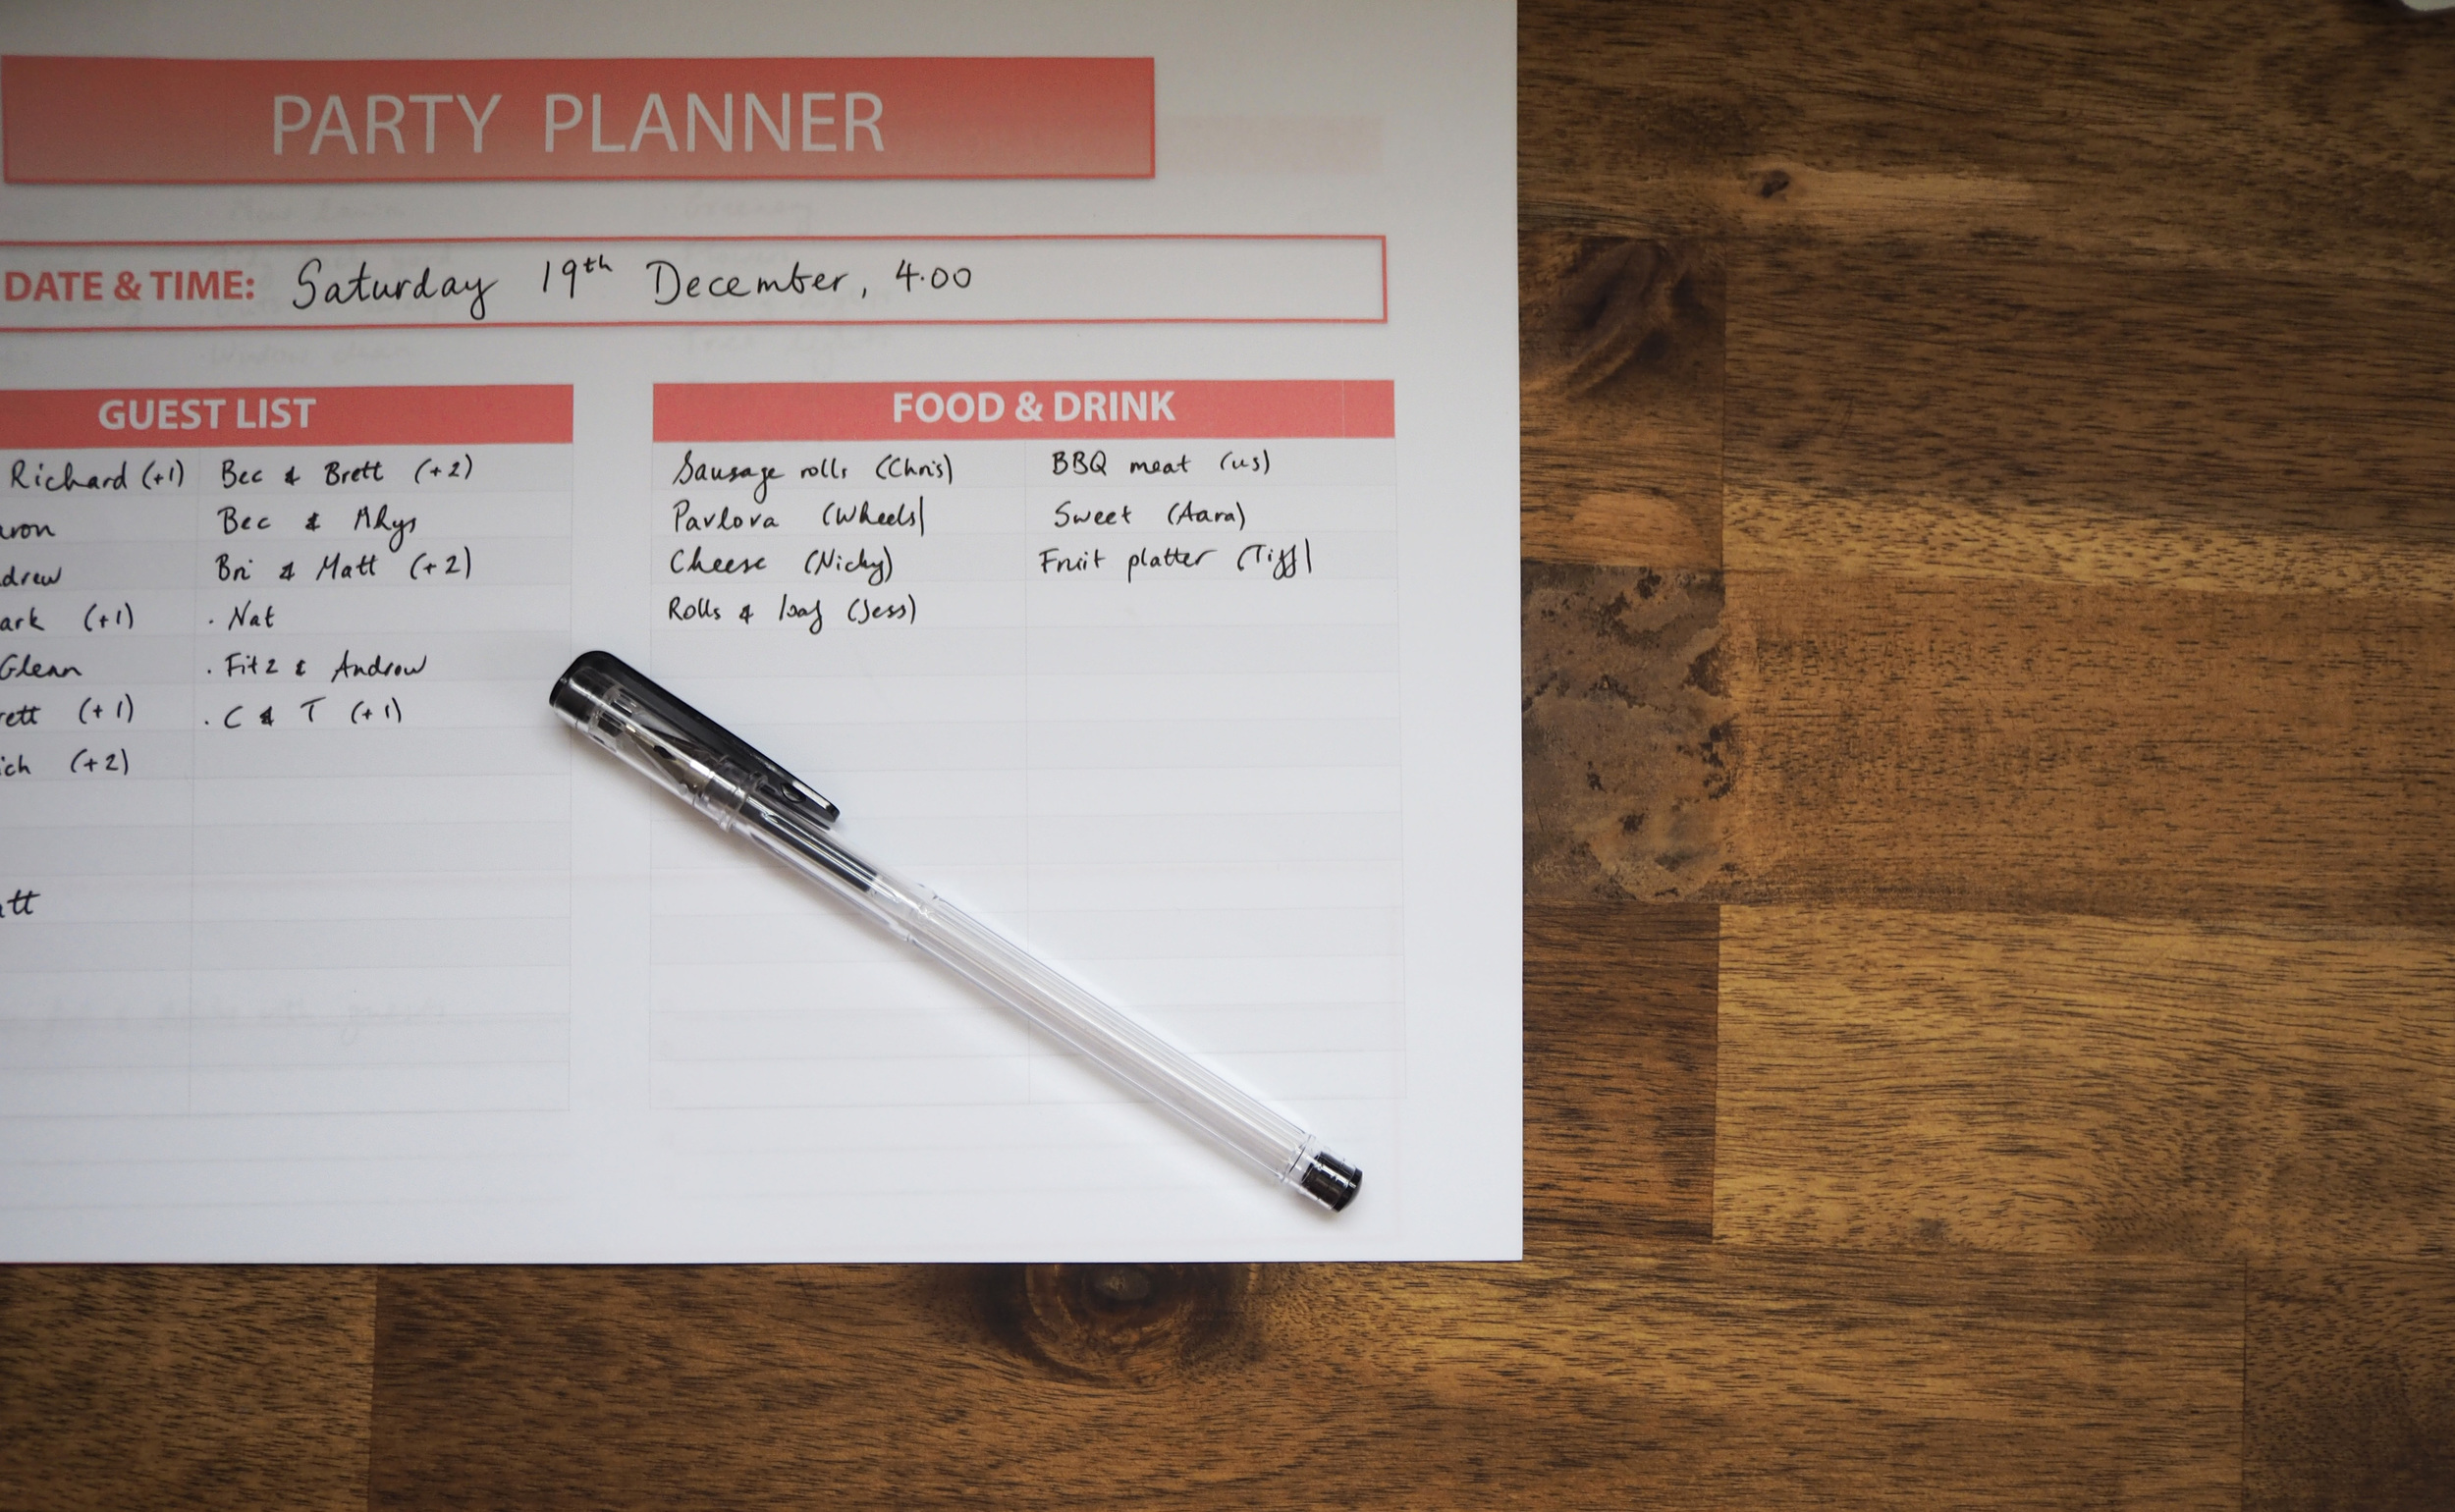 party planning checklist - keeping track of food and drinks